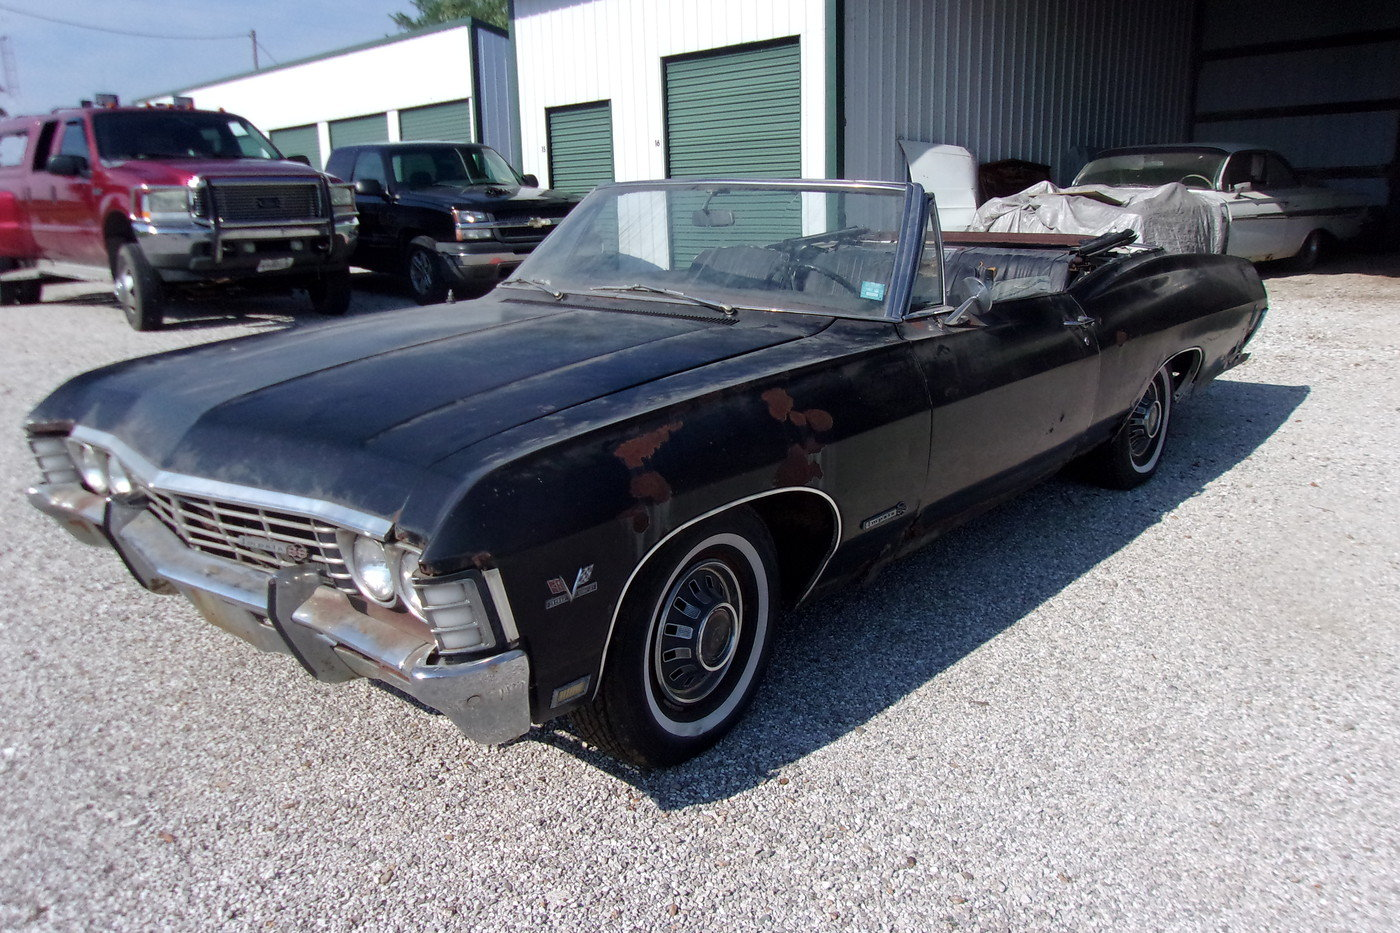 1967 Chevrolet Impala SS 396 convertible  For Sale (picture 1 of 6)